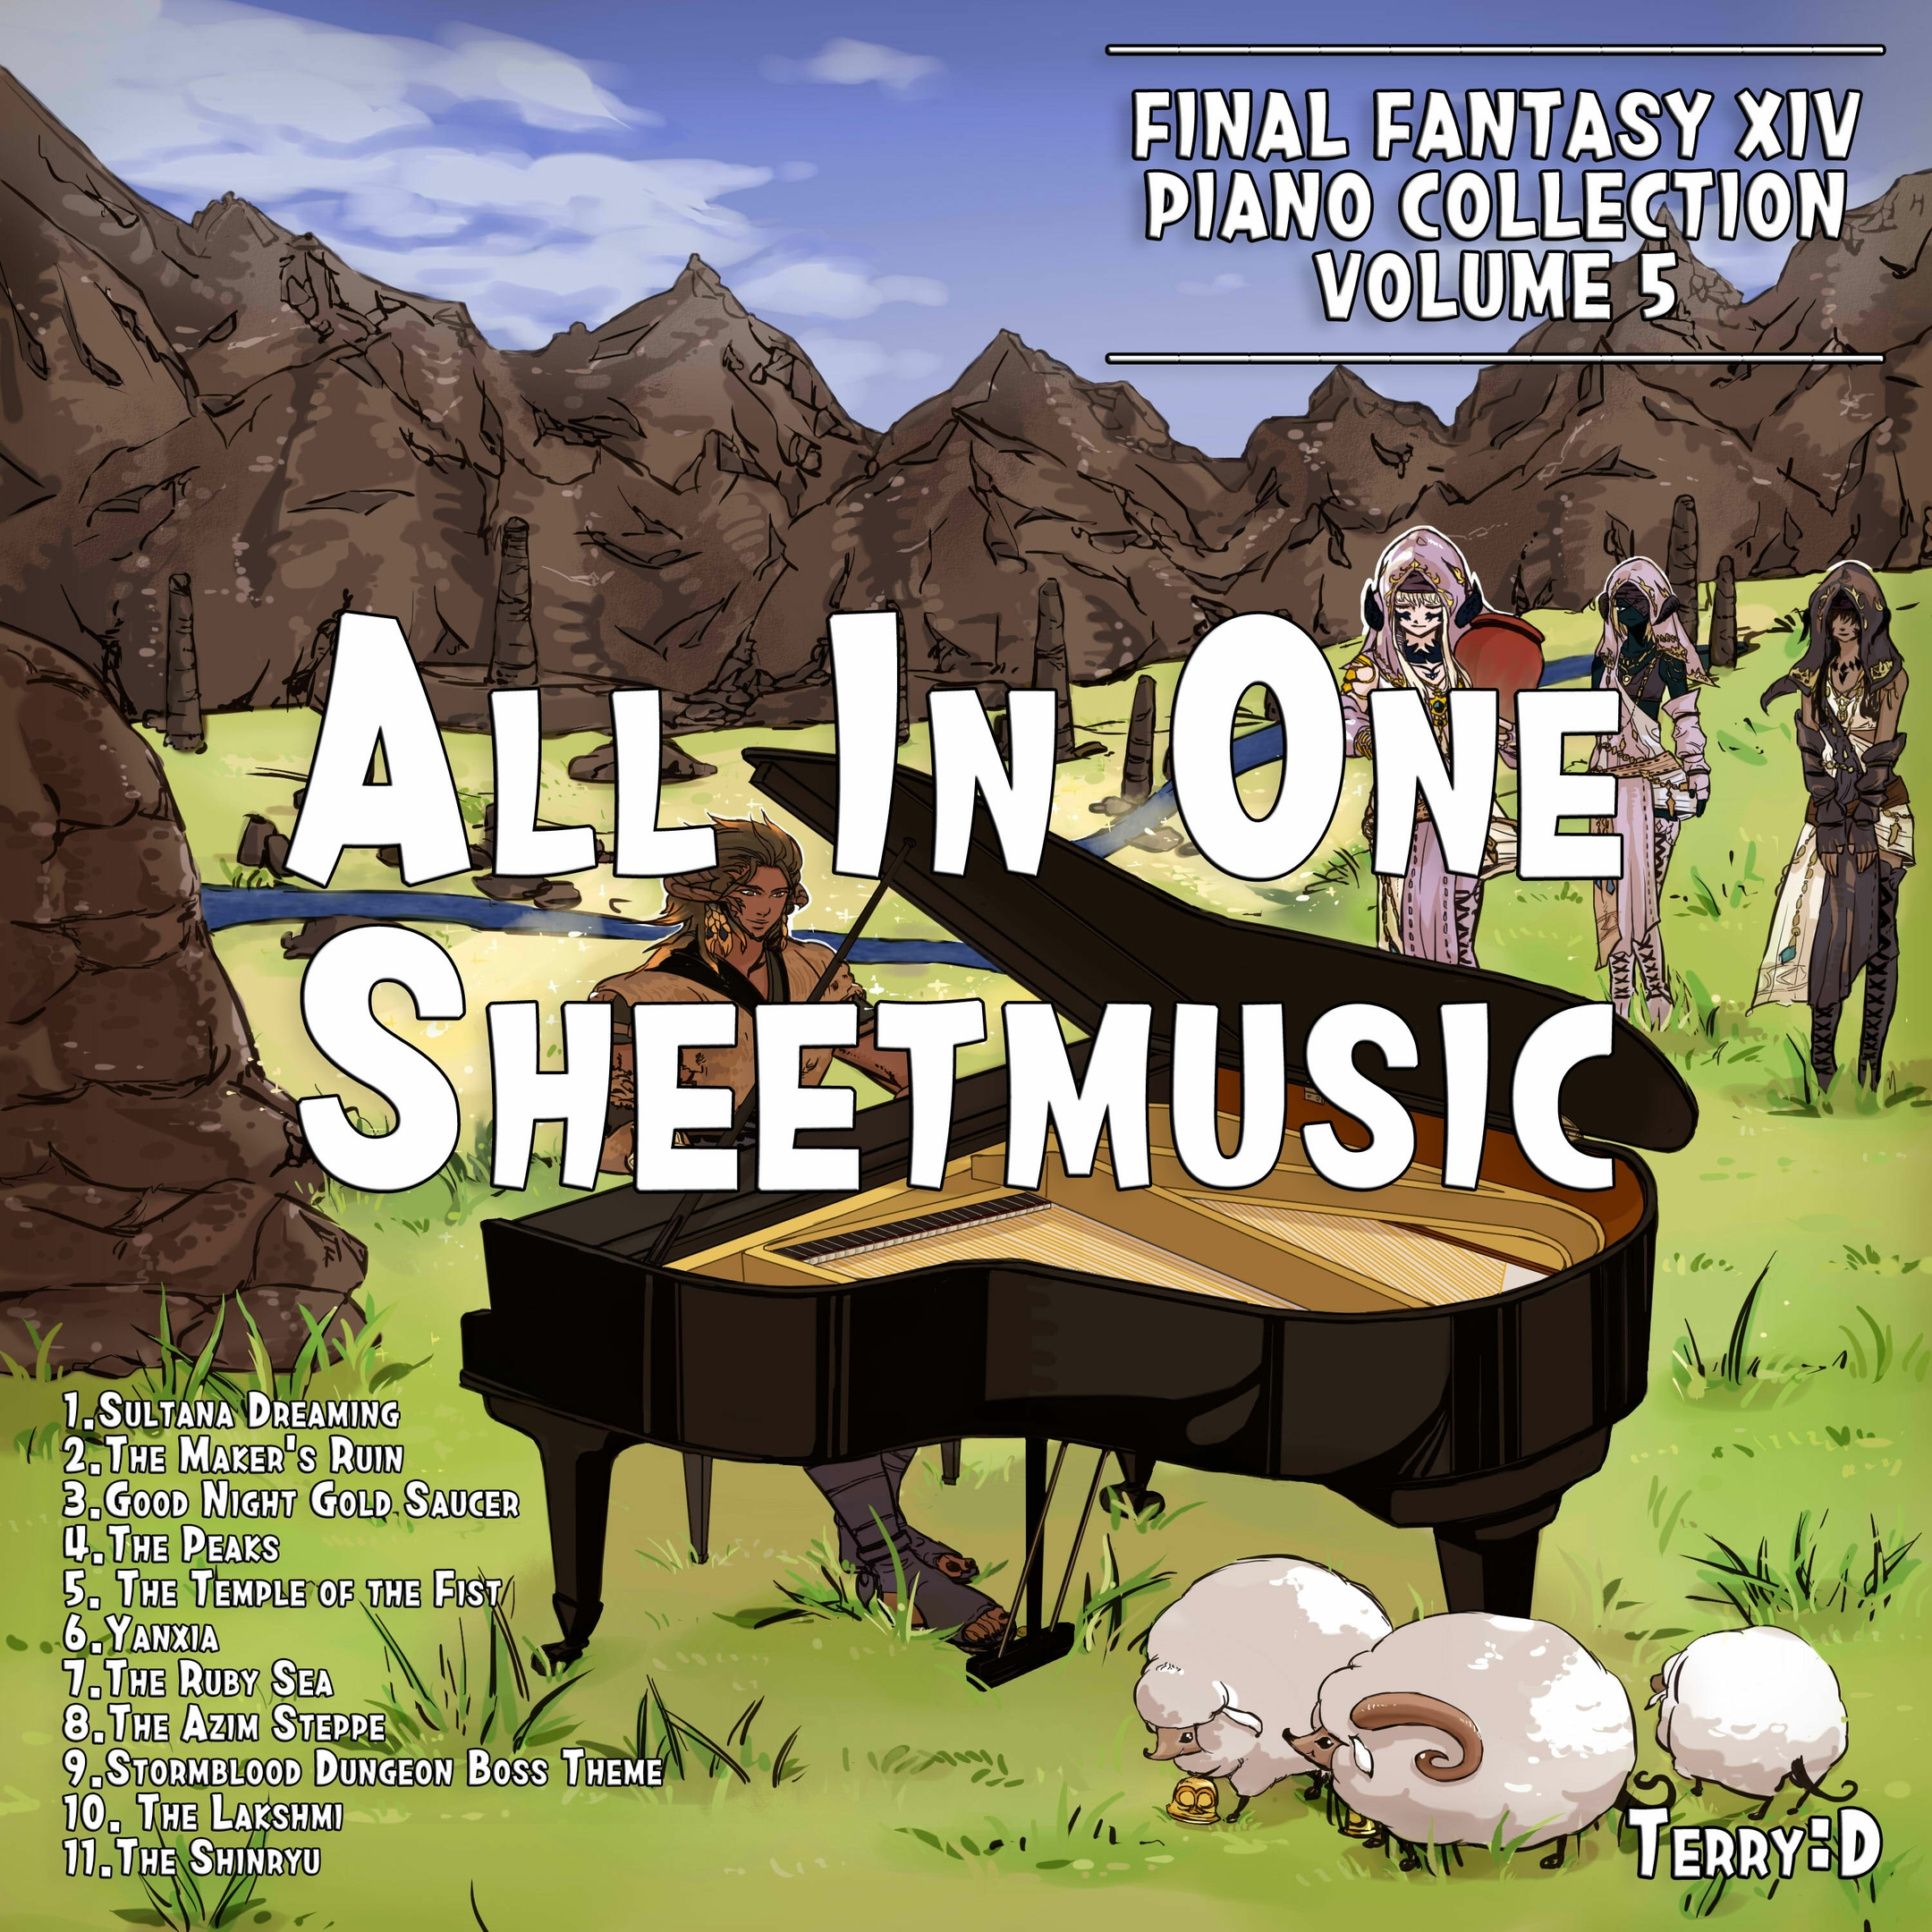 Final Fantasy XIV Piano Collection Vol.5 By Terry:D. A